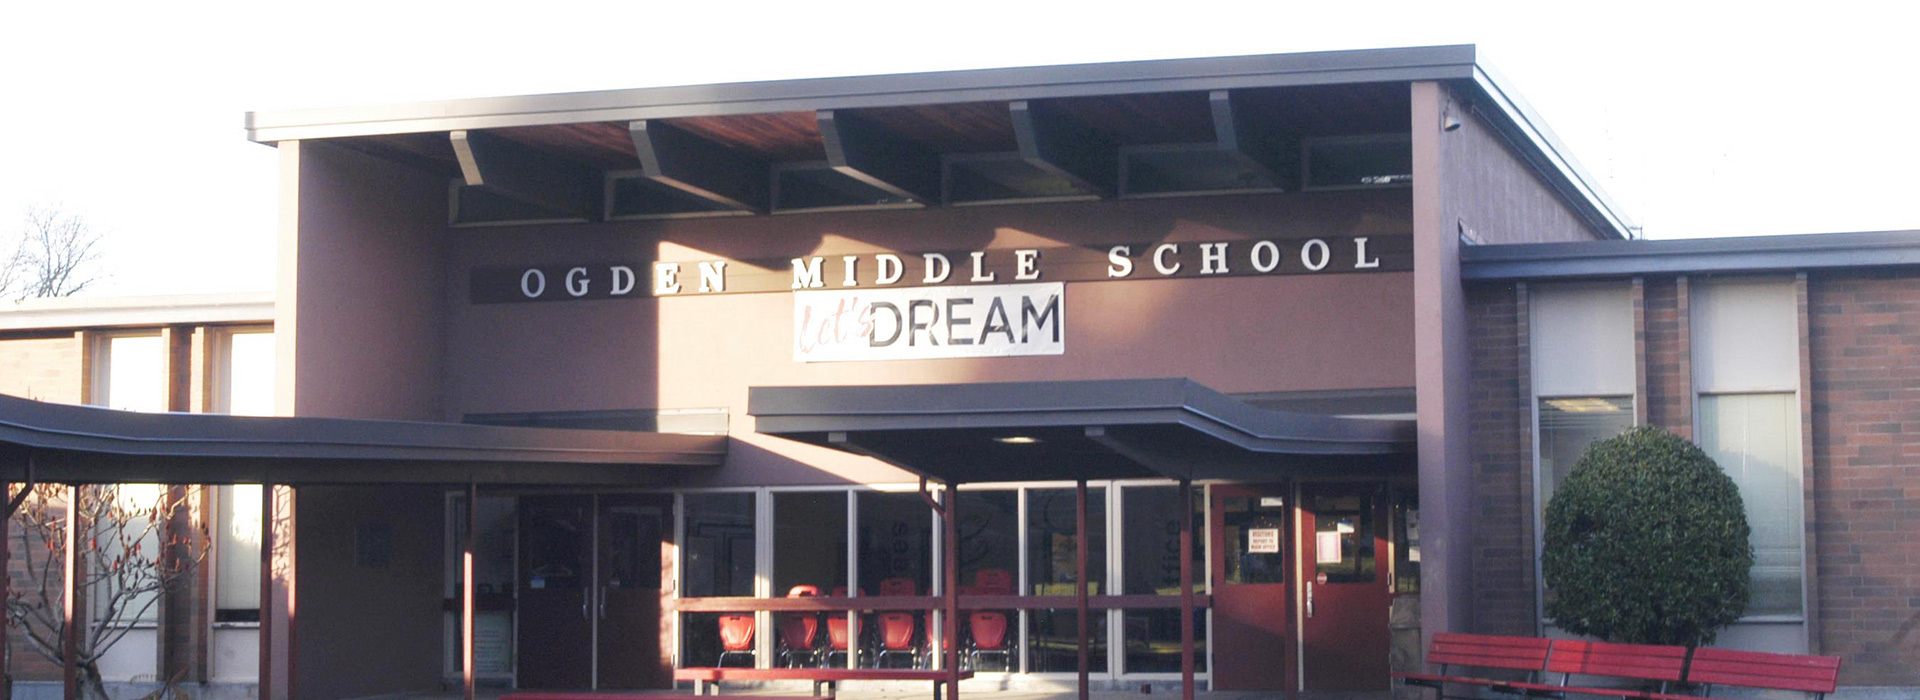 Ogden Middle School | Oregon City School District Pertaining To Ogden City School Calendar 2021